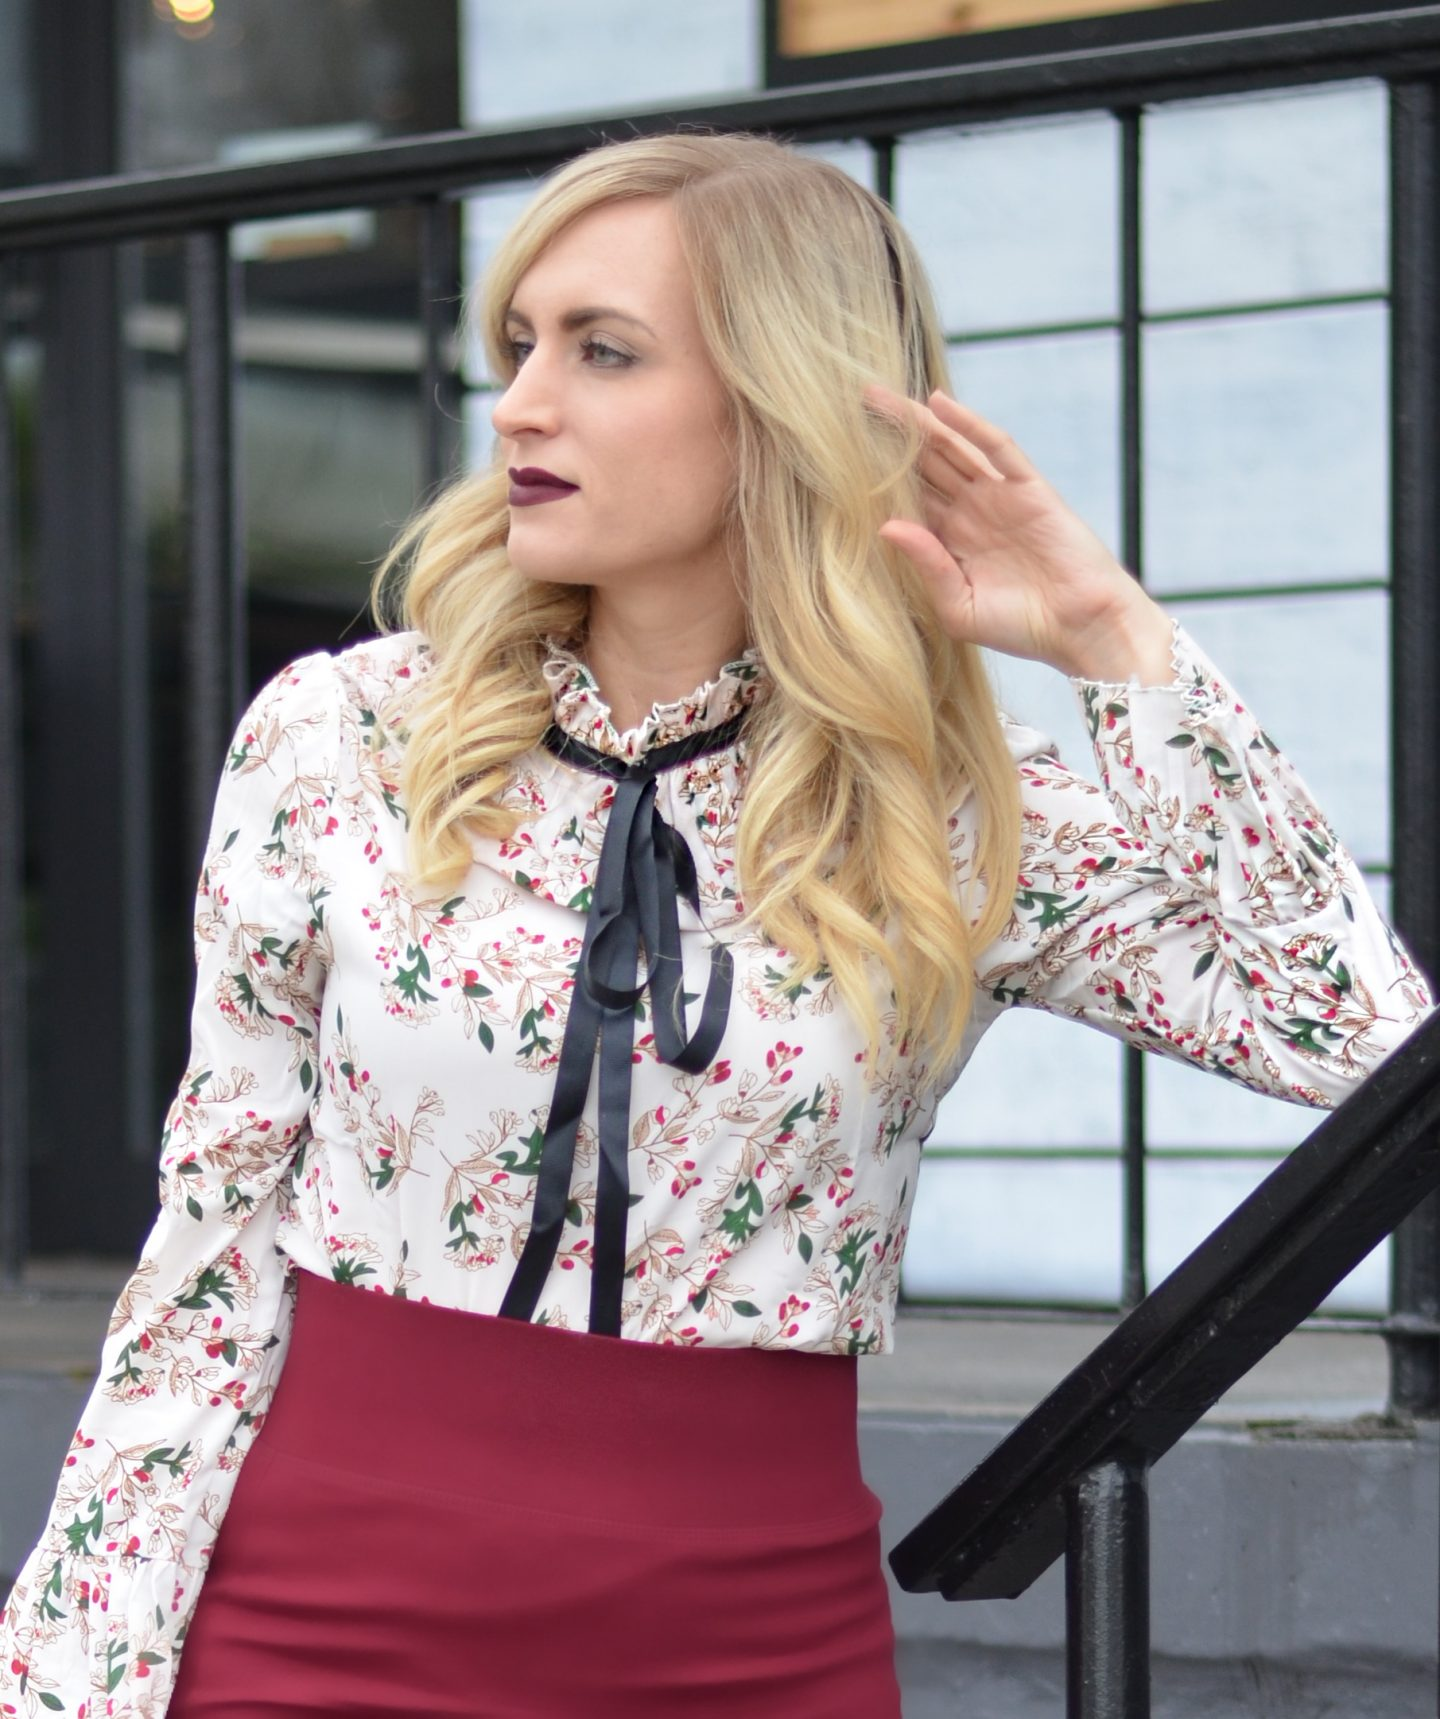 work day outfit floral bow tie neck blouse